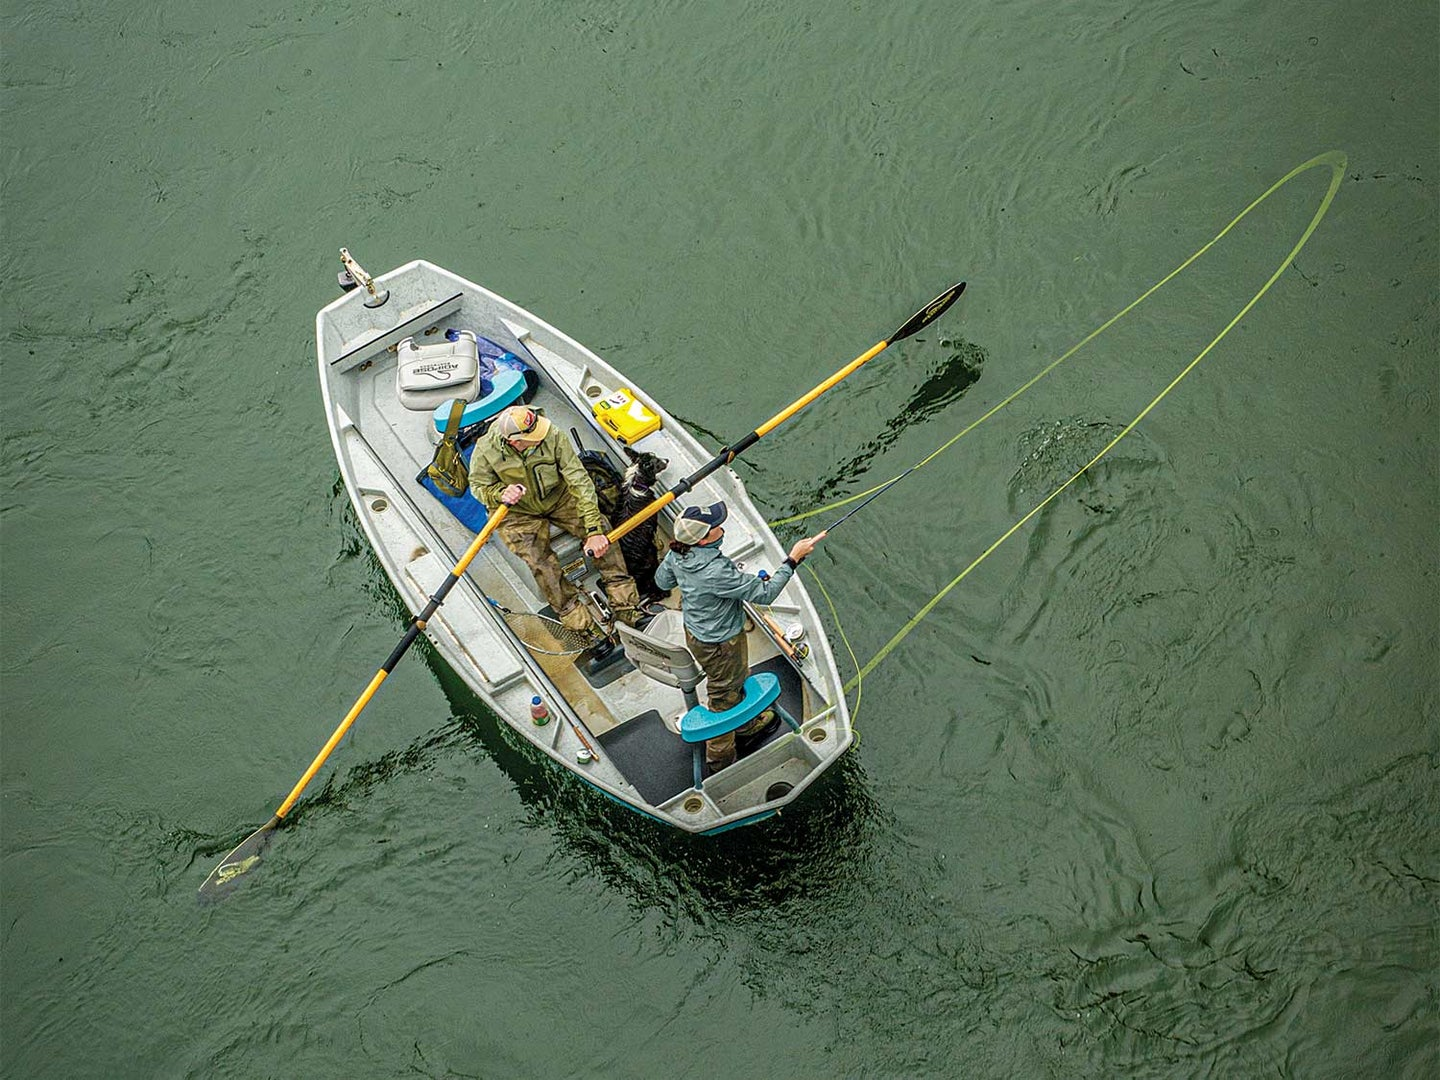 Two anglers in a row boat